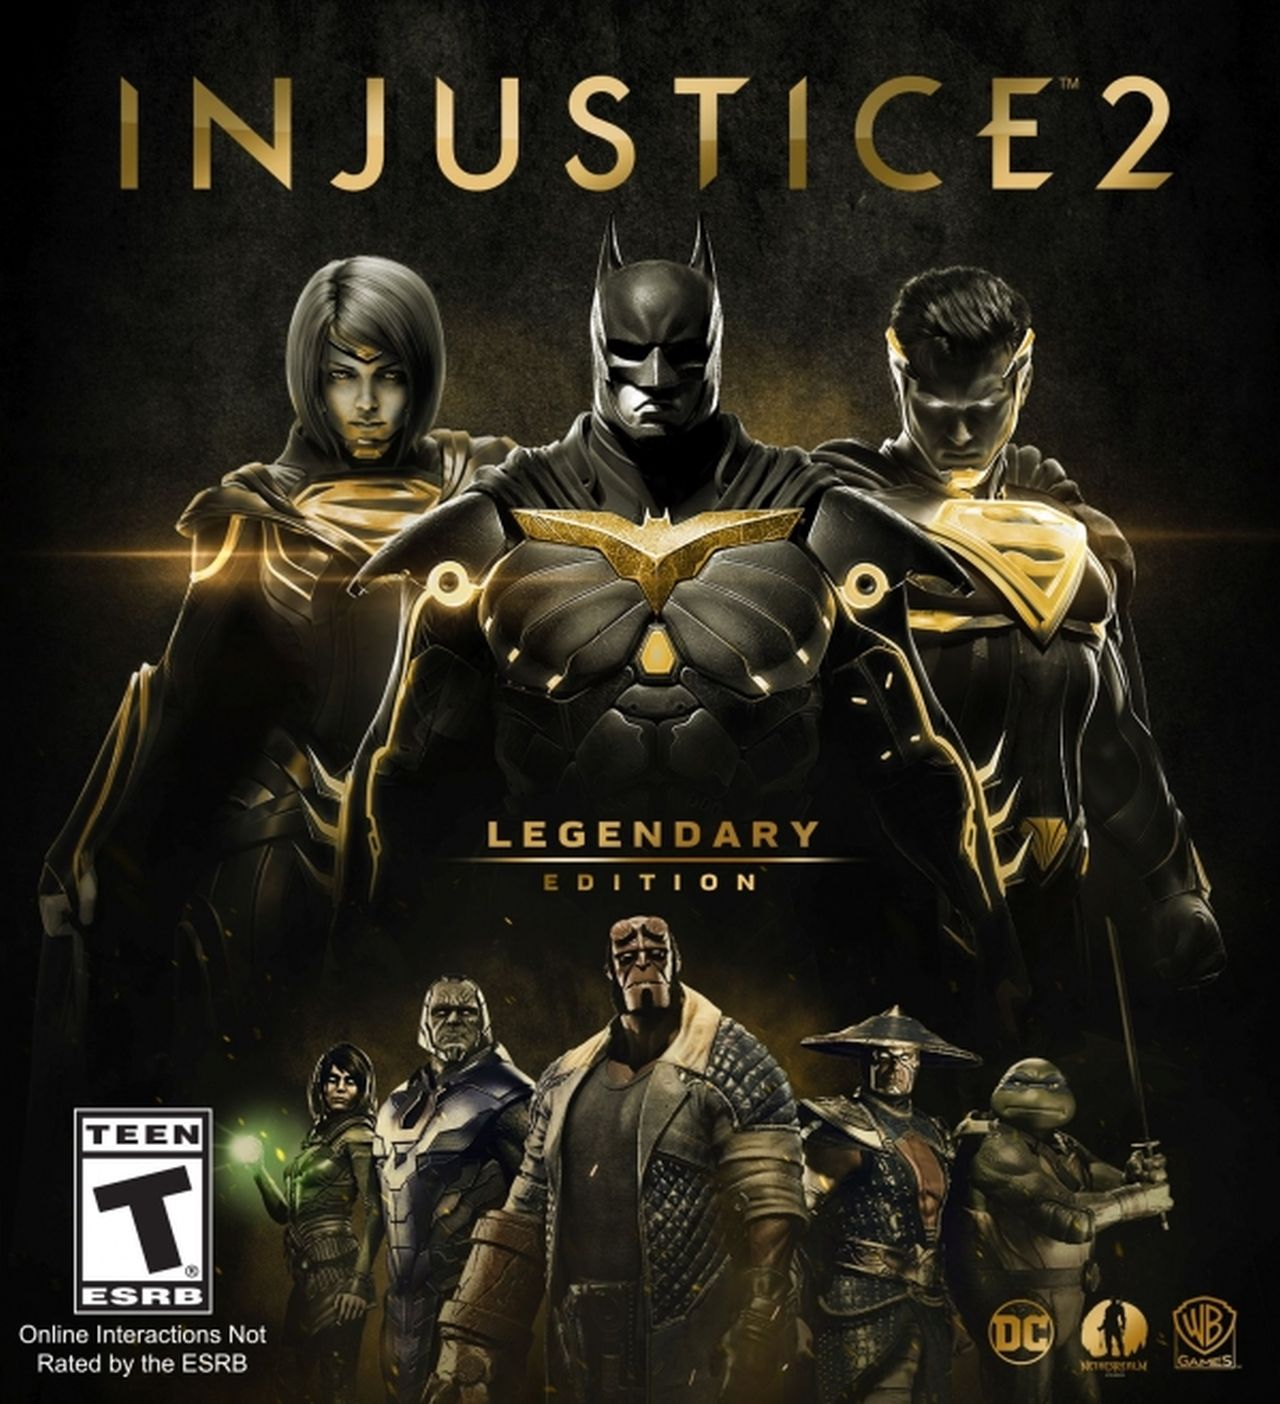 Injustice 2: NetherRealm Studios annuncia oggi la Legendary Edition